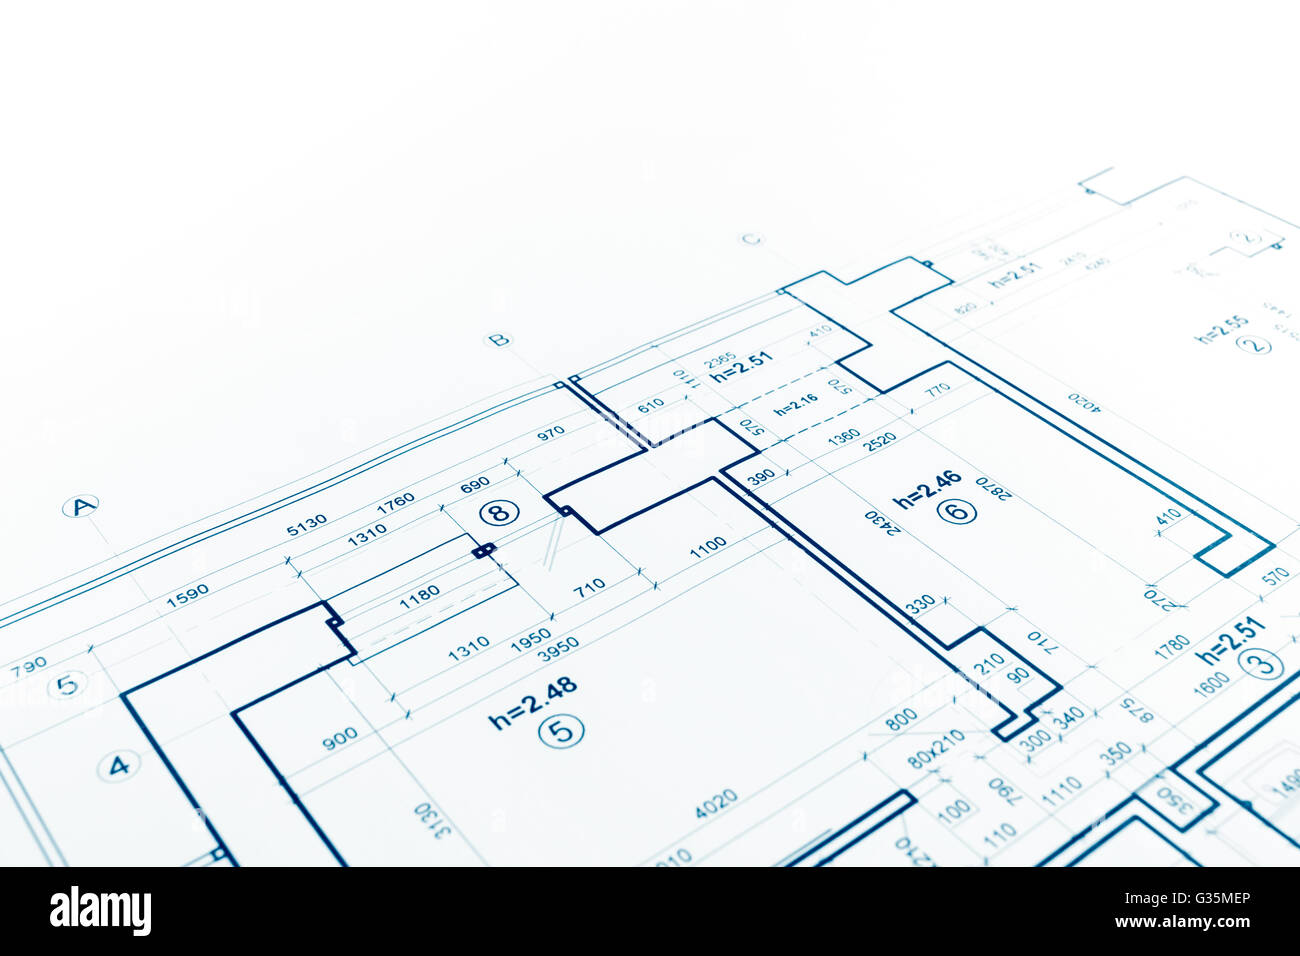 Blueprint floor plan technical drawing construction background blueprint floor plan technical drawing construction background malvernweather Image collections